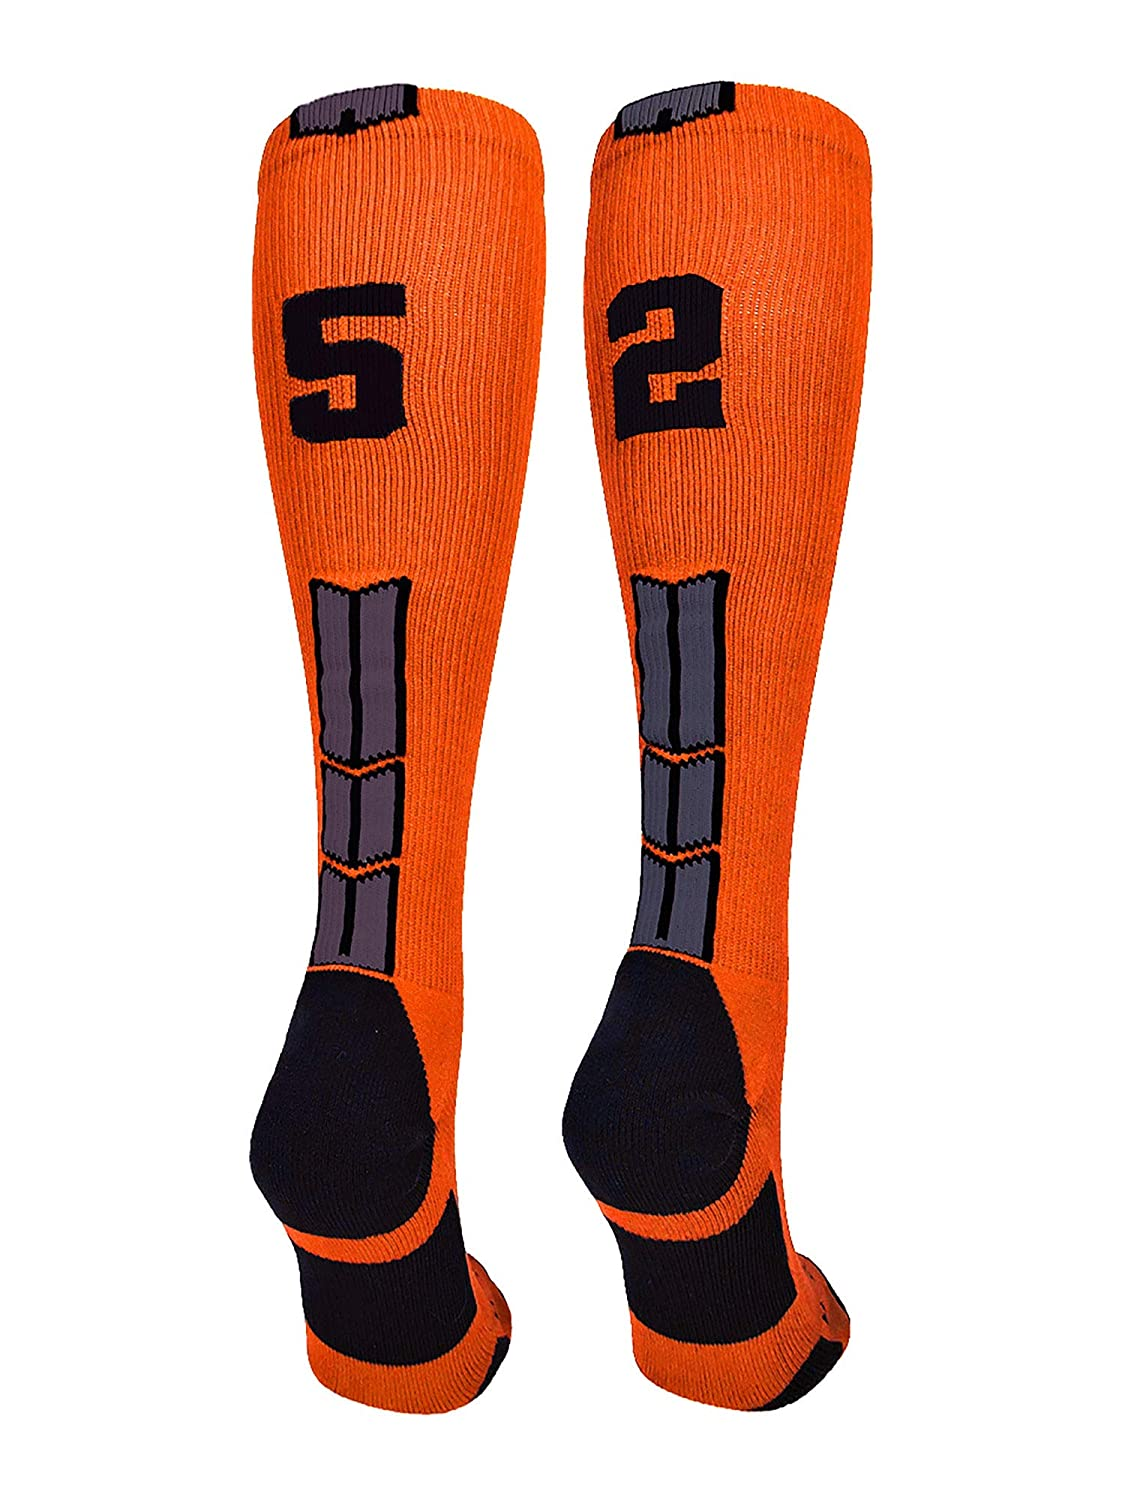 MadSportsStuff Orange/Black Player Id Custom Over The Calf Number Socks (Pair)